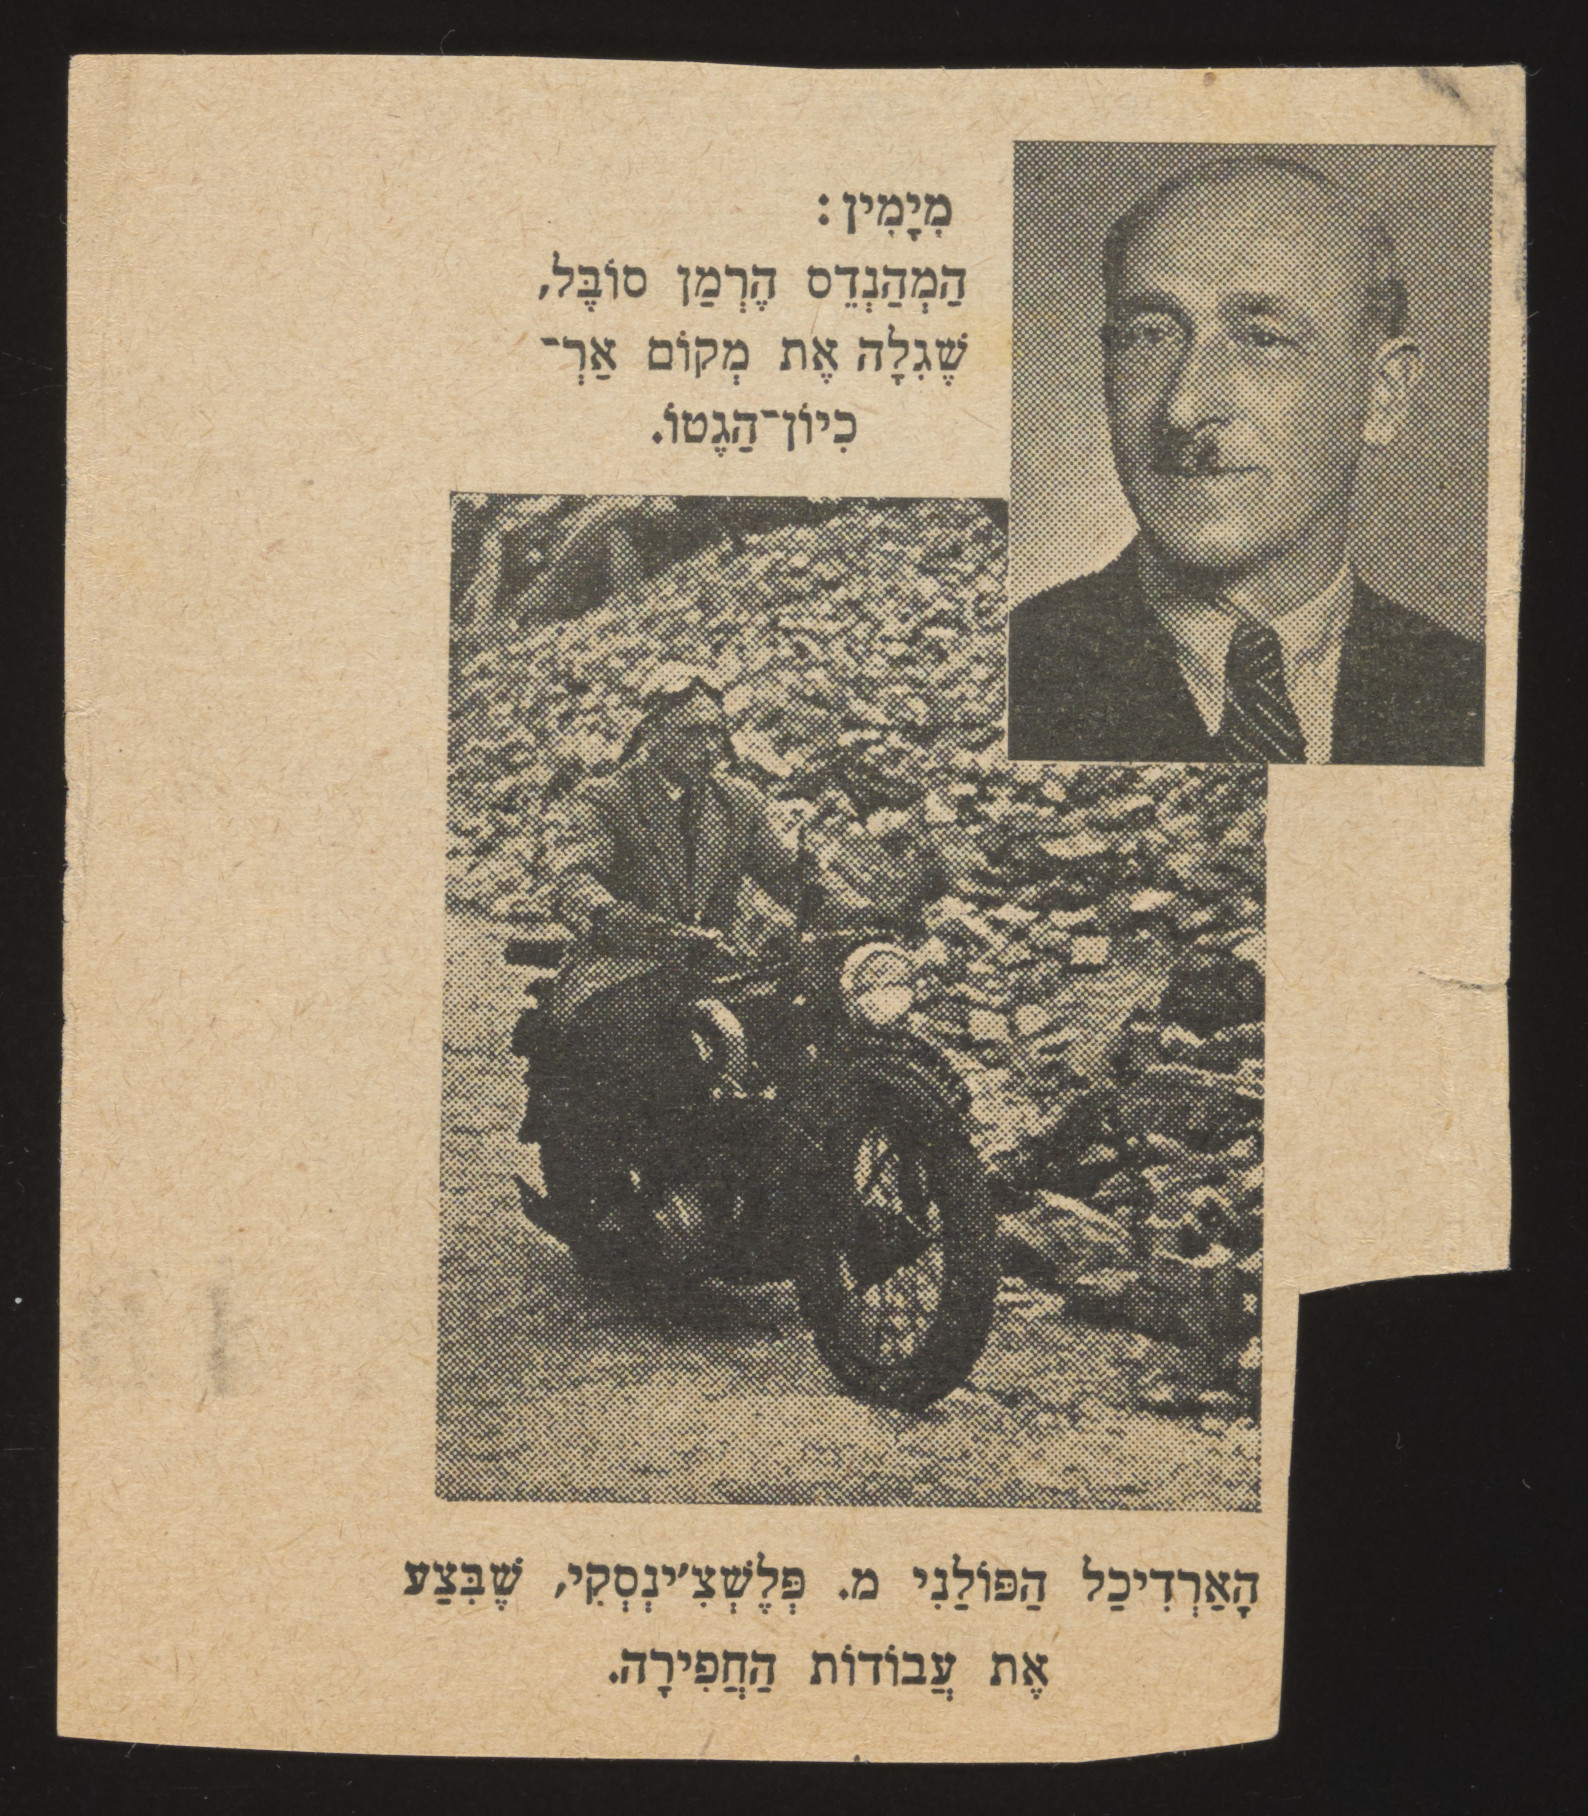 Newspaper clipping showing photographs of Herman Sobel who discovered the hiding place of the Ringelbum Archive and the architect Pleschinski who unearthed it.